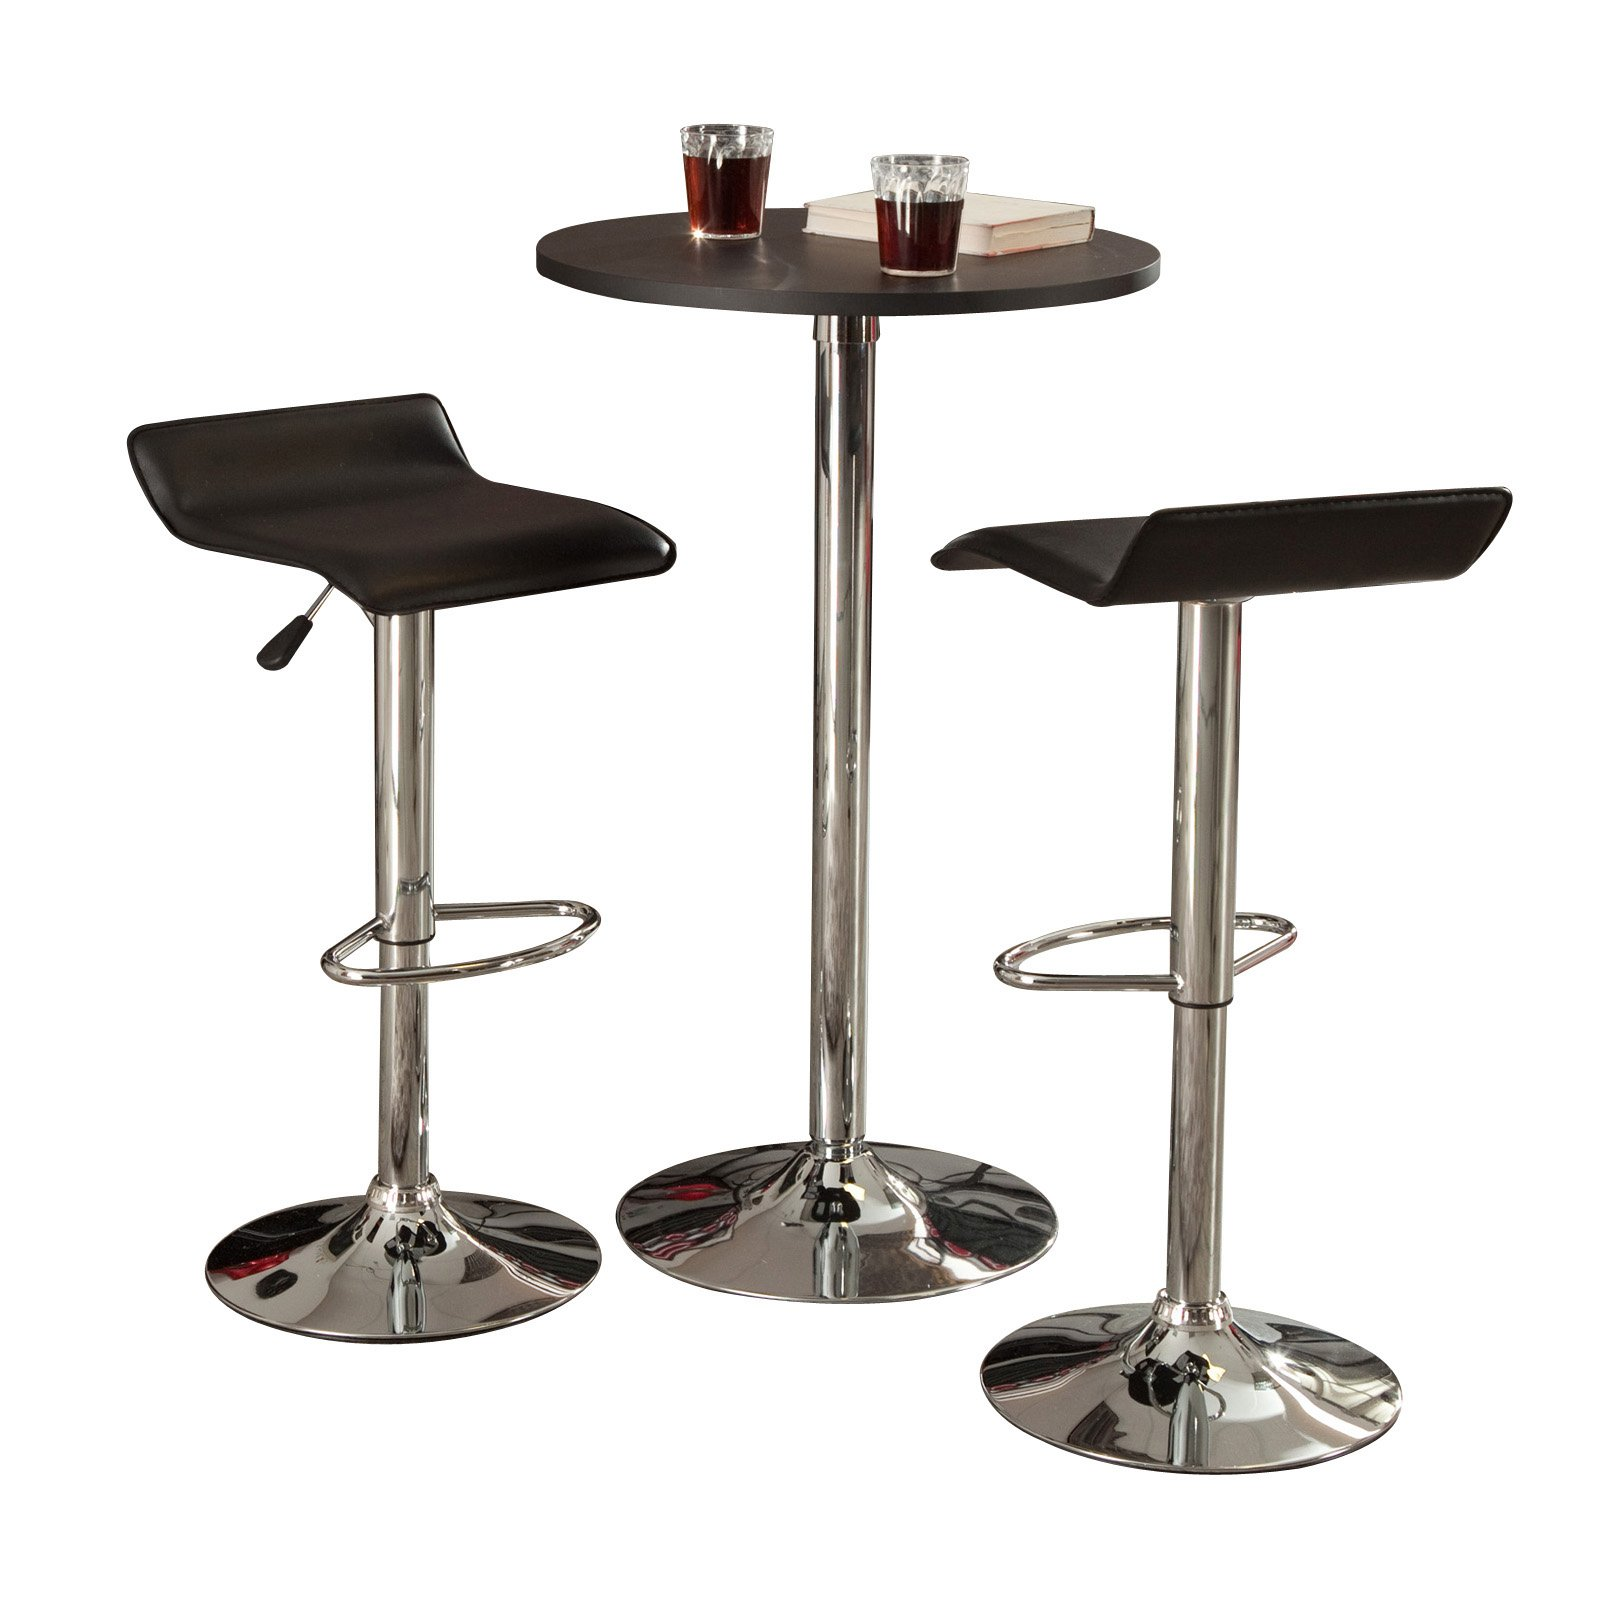 Super Winsome Wood Spectrum Pub Table Stools 3Pc Set Black Chrome Walmart Com Onthecornerstone Fun Painted Chair Ideas Images Onthecornerstoneorg